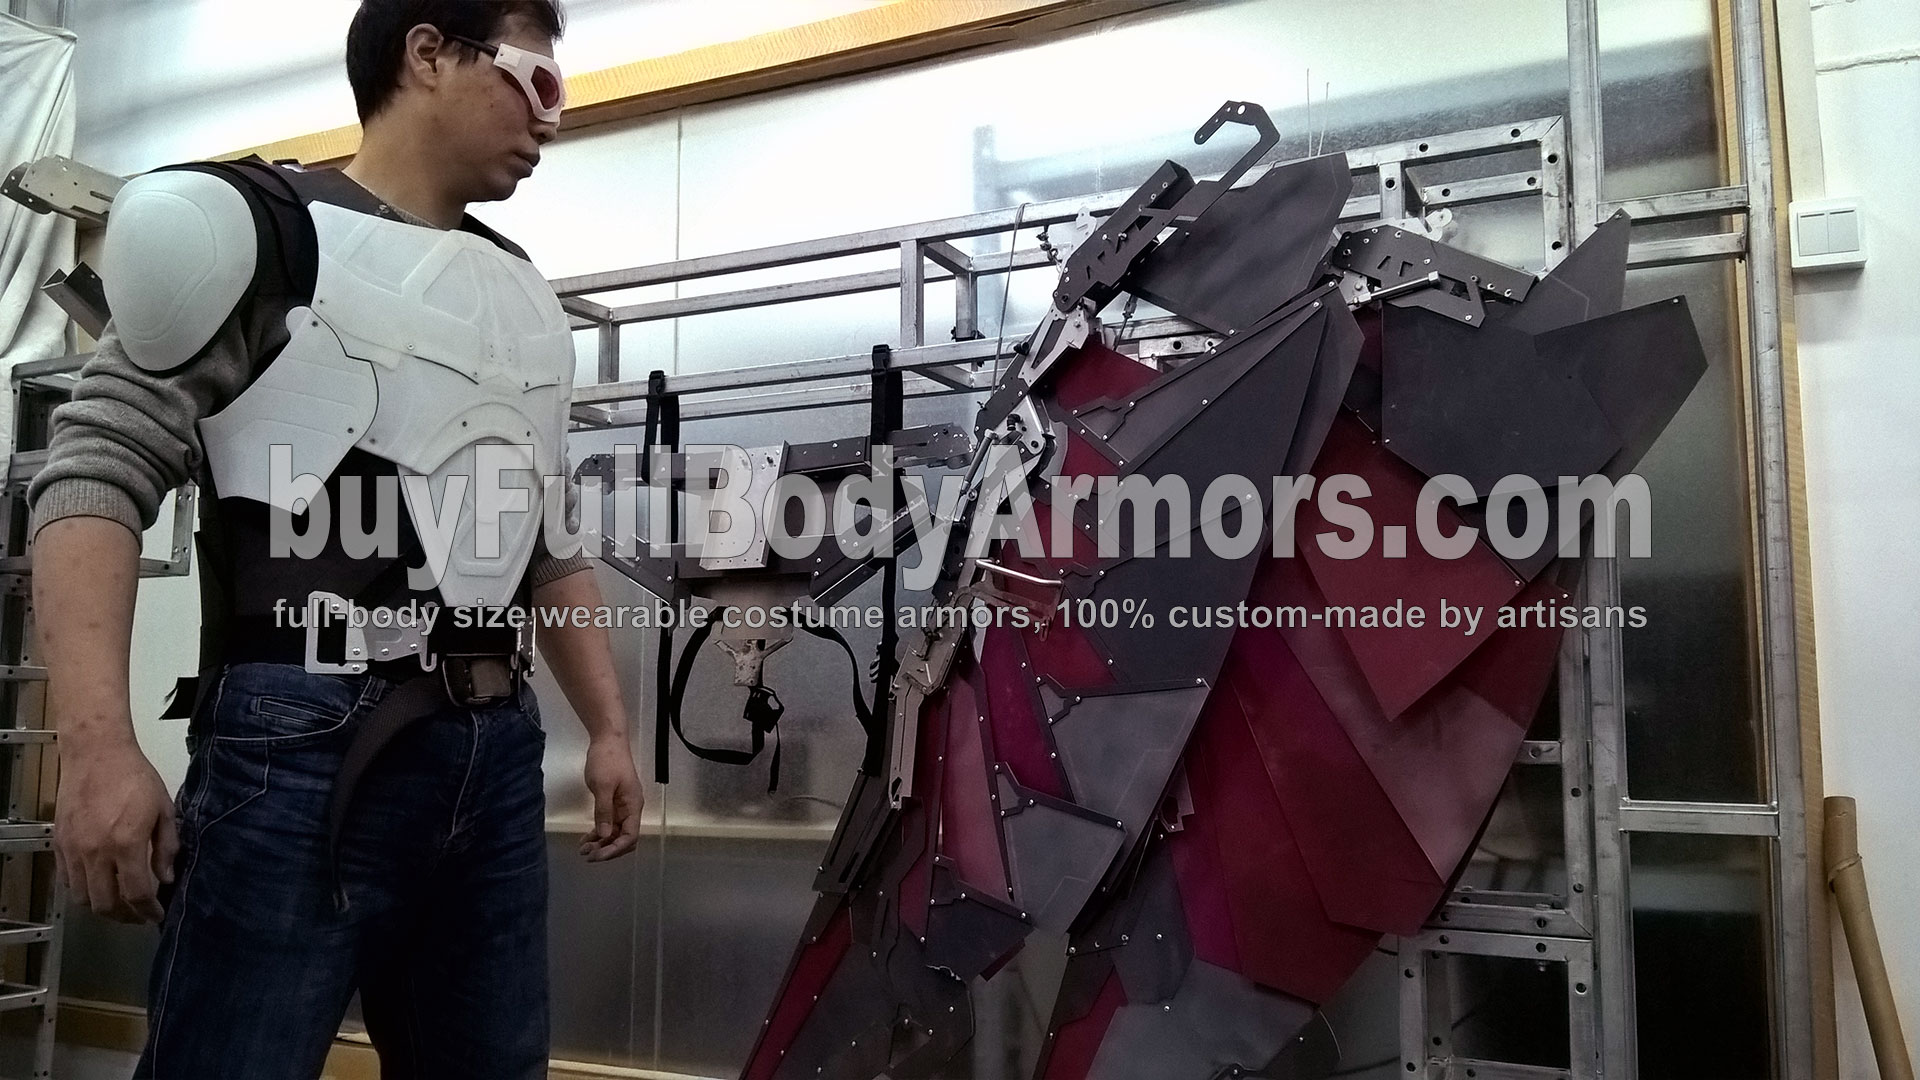 The Avengers 2 Wearable Falcon Suit Prototype - wings, chest armor, back flying pack 1